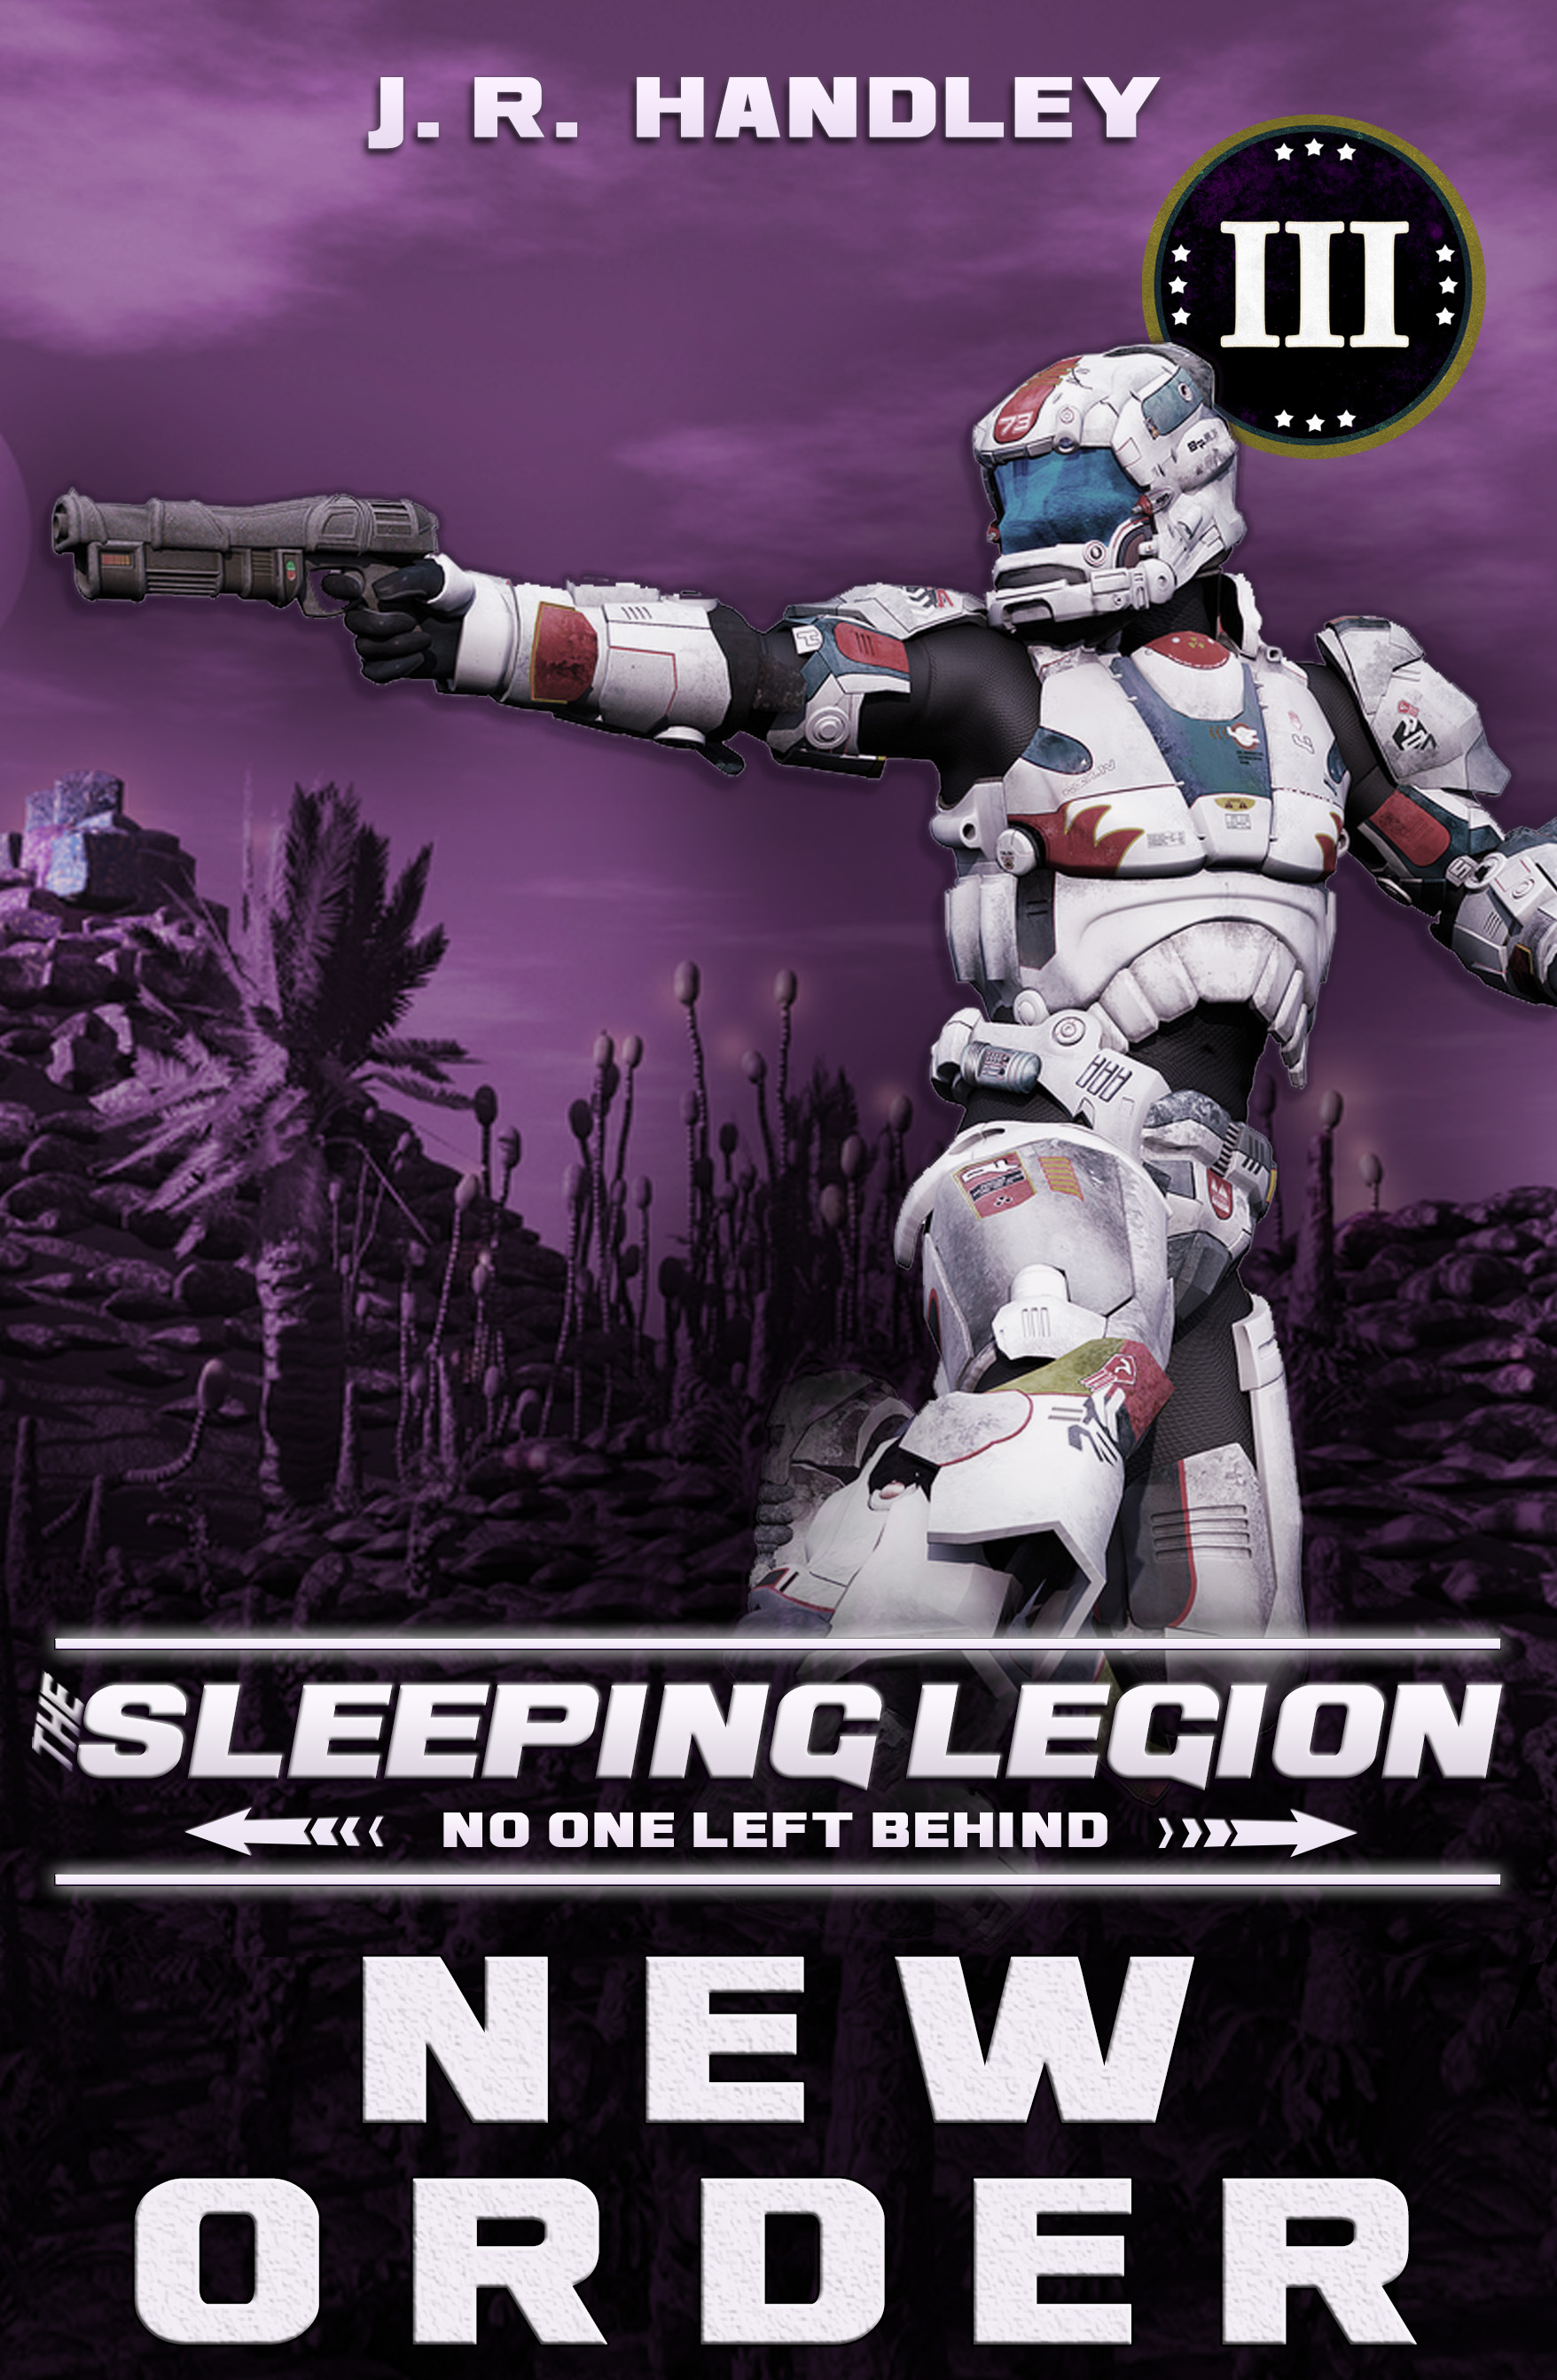 SleepingLegion_Book3_06